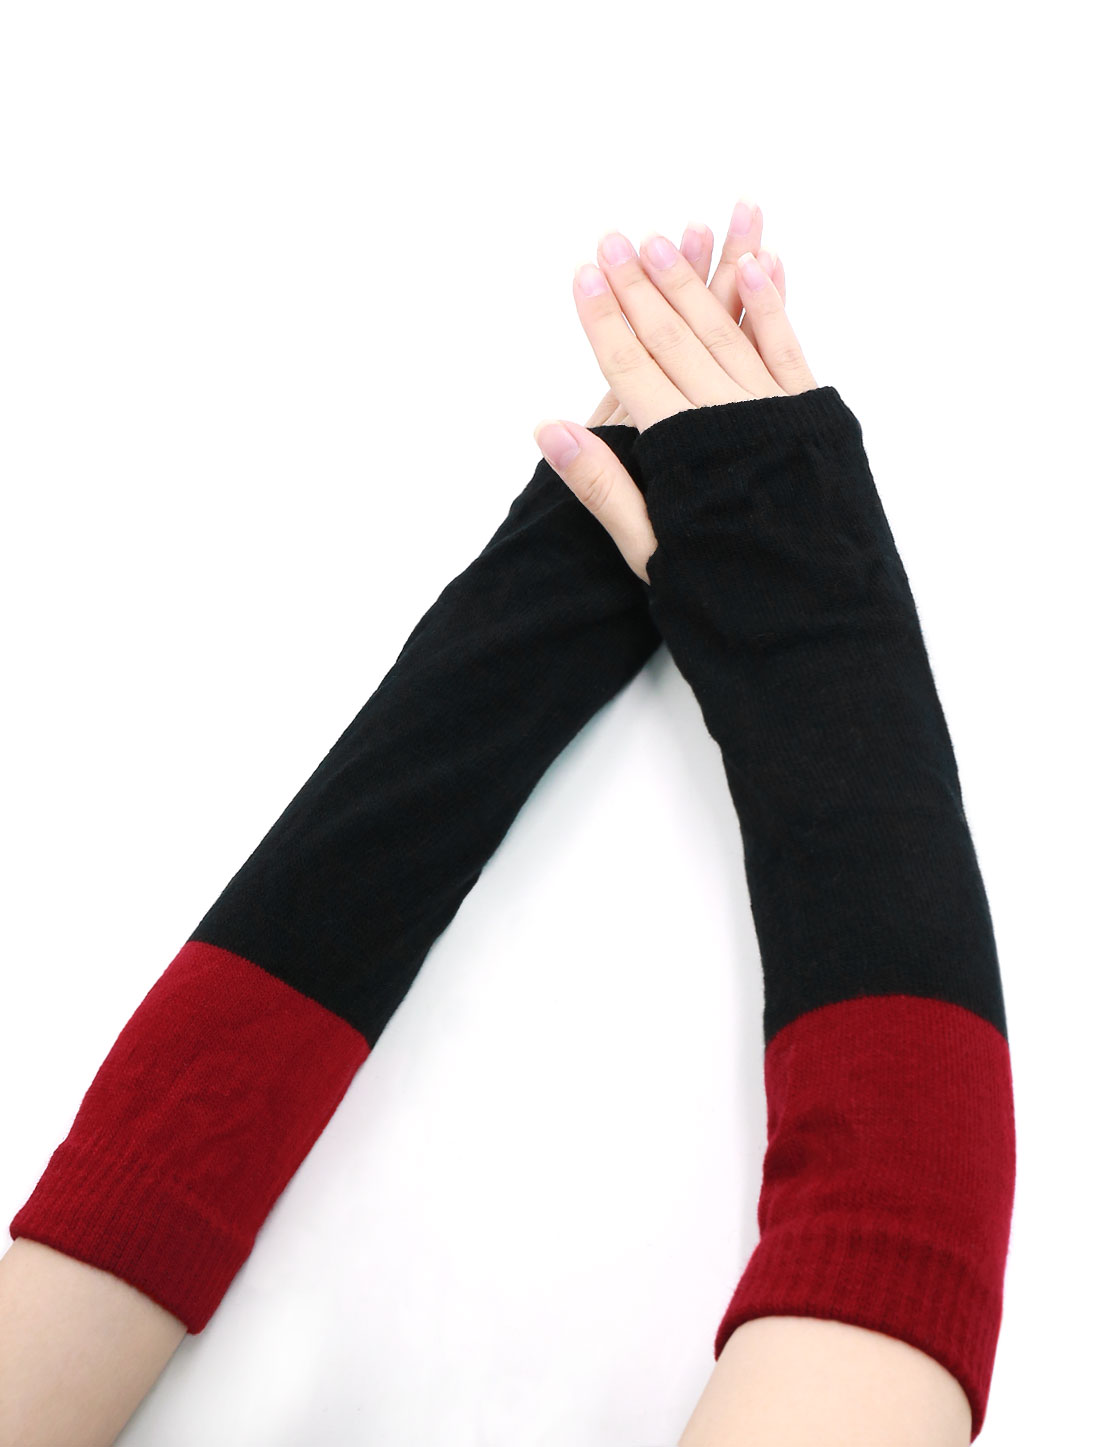 Lady Color Block Knit Fingerless Gloves Pair Red Black